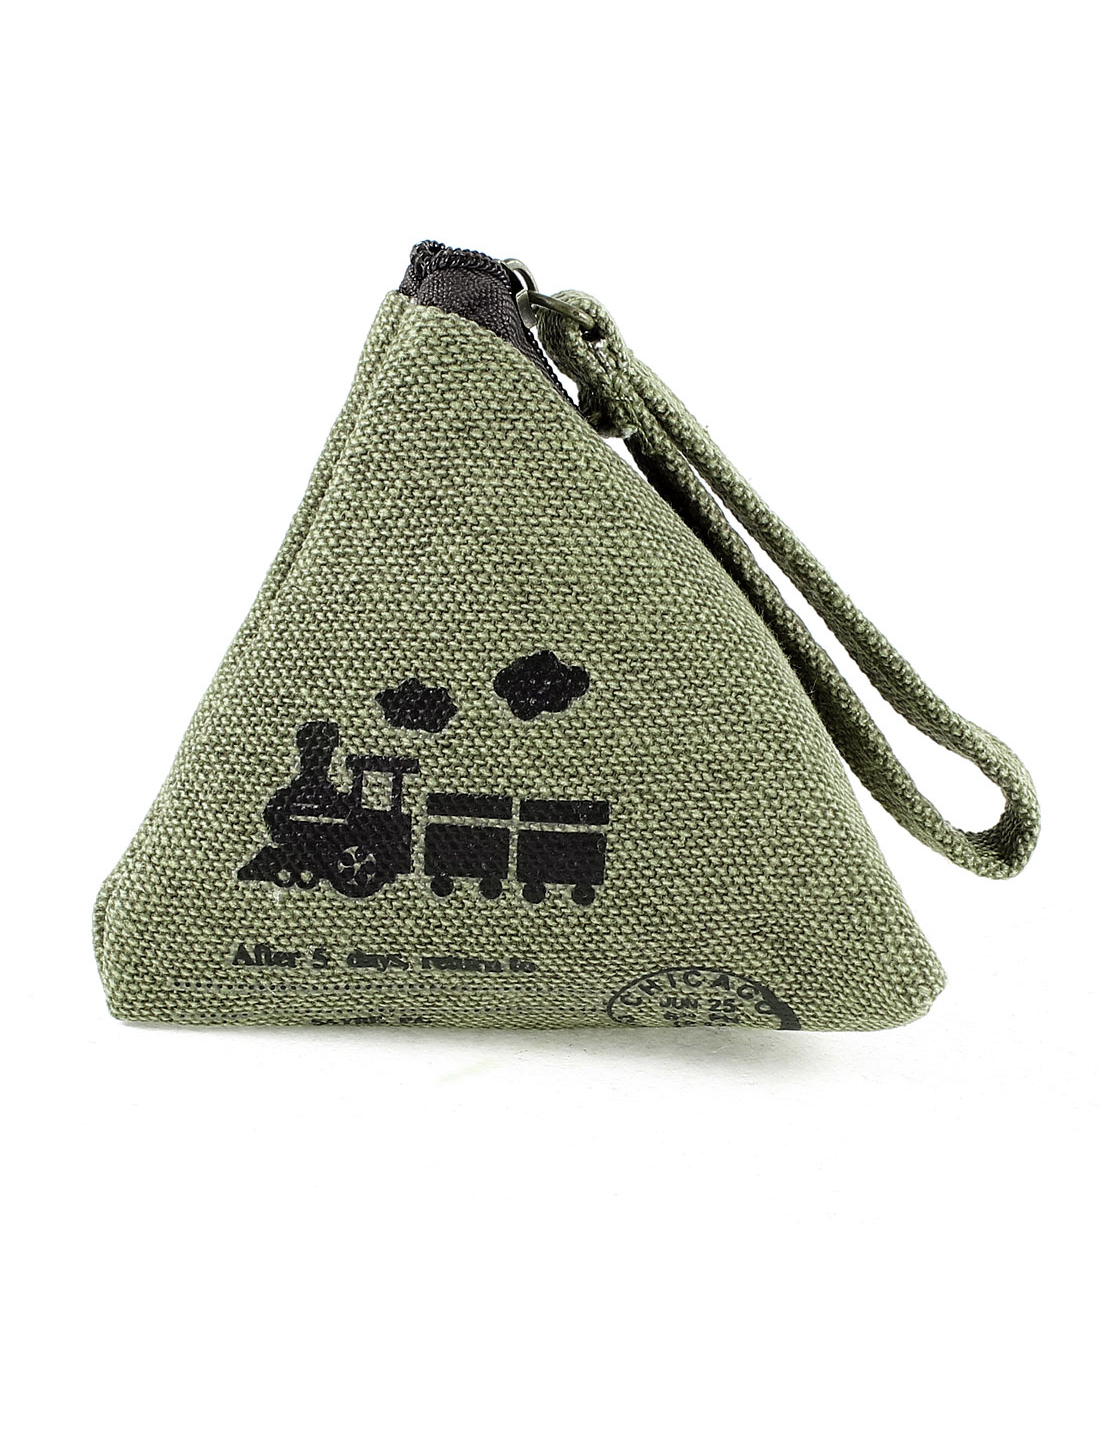 Steam Train Print Pyramid Shape Zipper Closure Cash Coin Money Key Credit Card Purse Bag Army Green for Lady